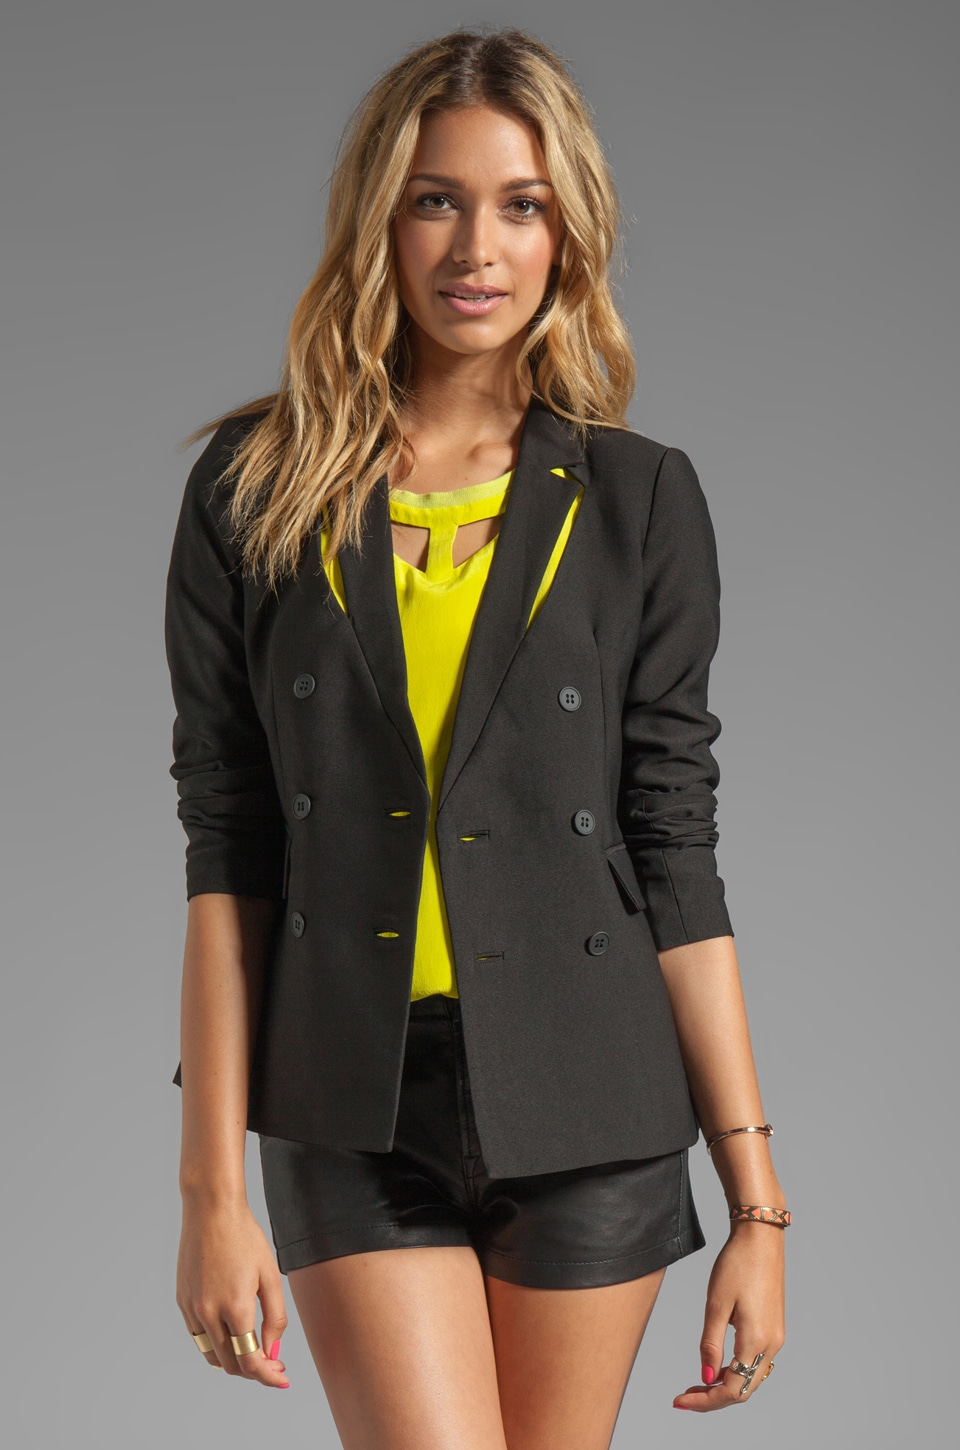 Funktional Reflection Cut Out Blazer in Black Reflect